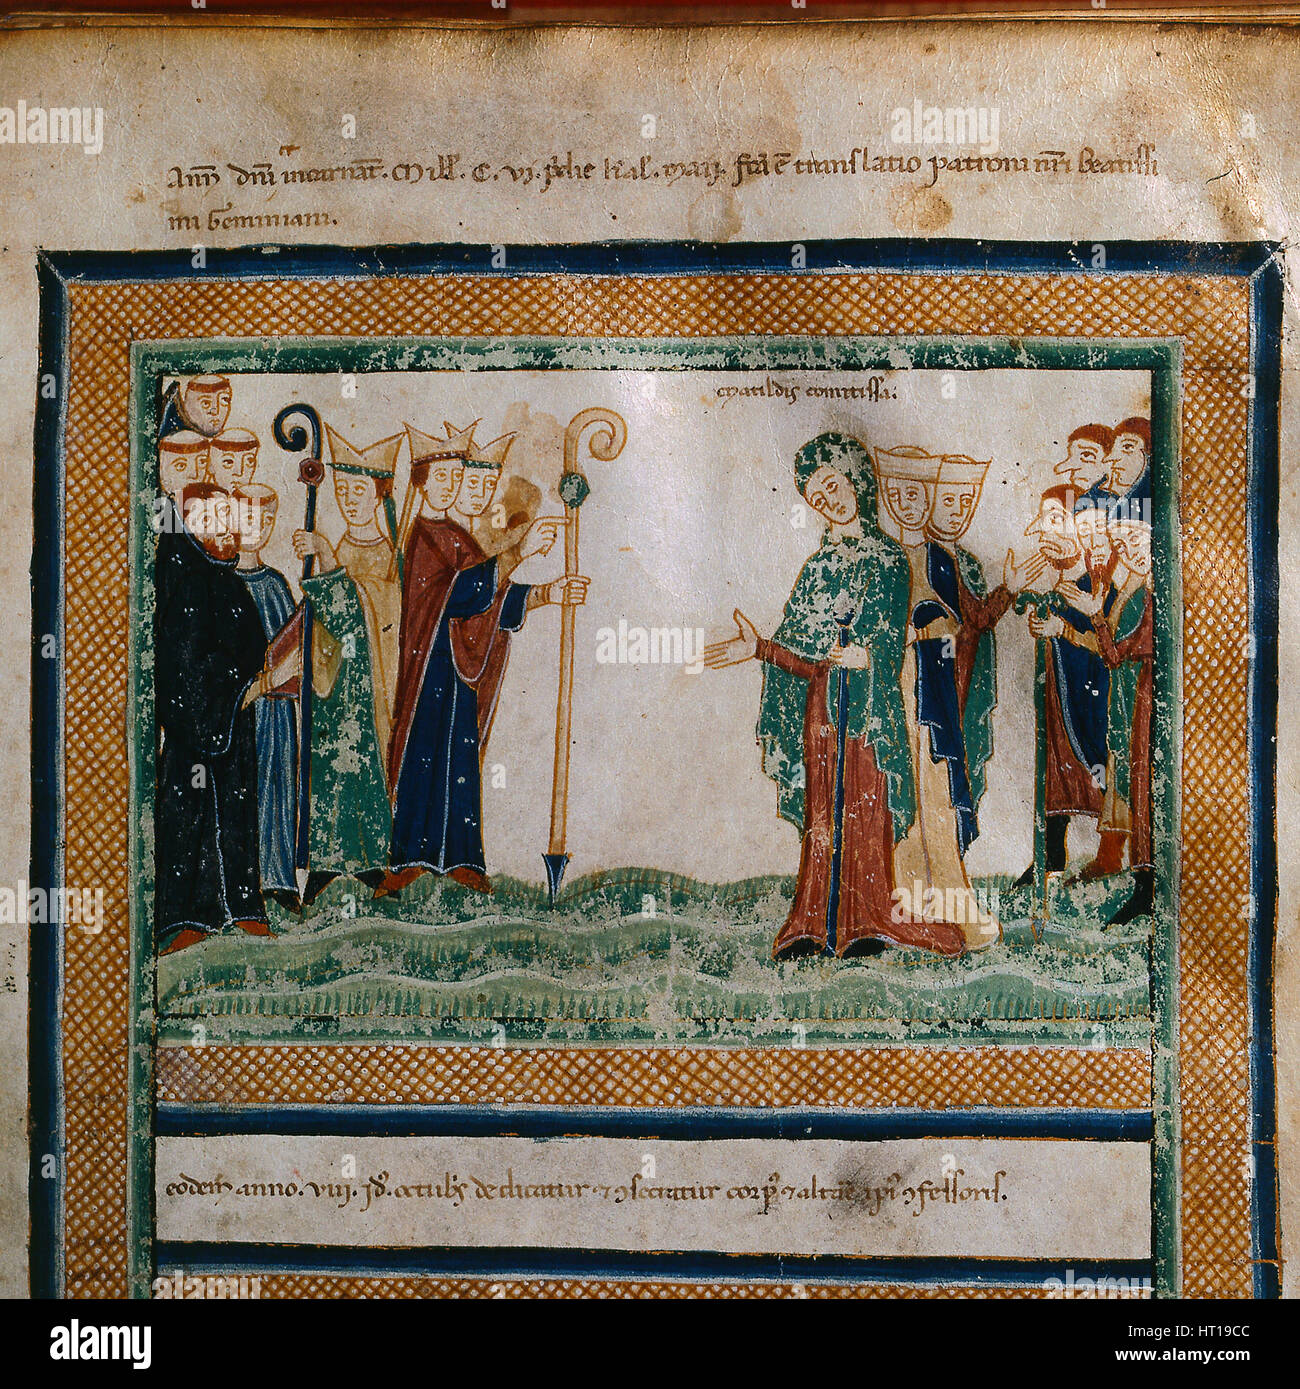 Matilda of Tuscany (From: Vita Mathildis di Donizone di Canossa), Between 1111 and 1115. Artist: Donizone di Canossa - Stock Image